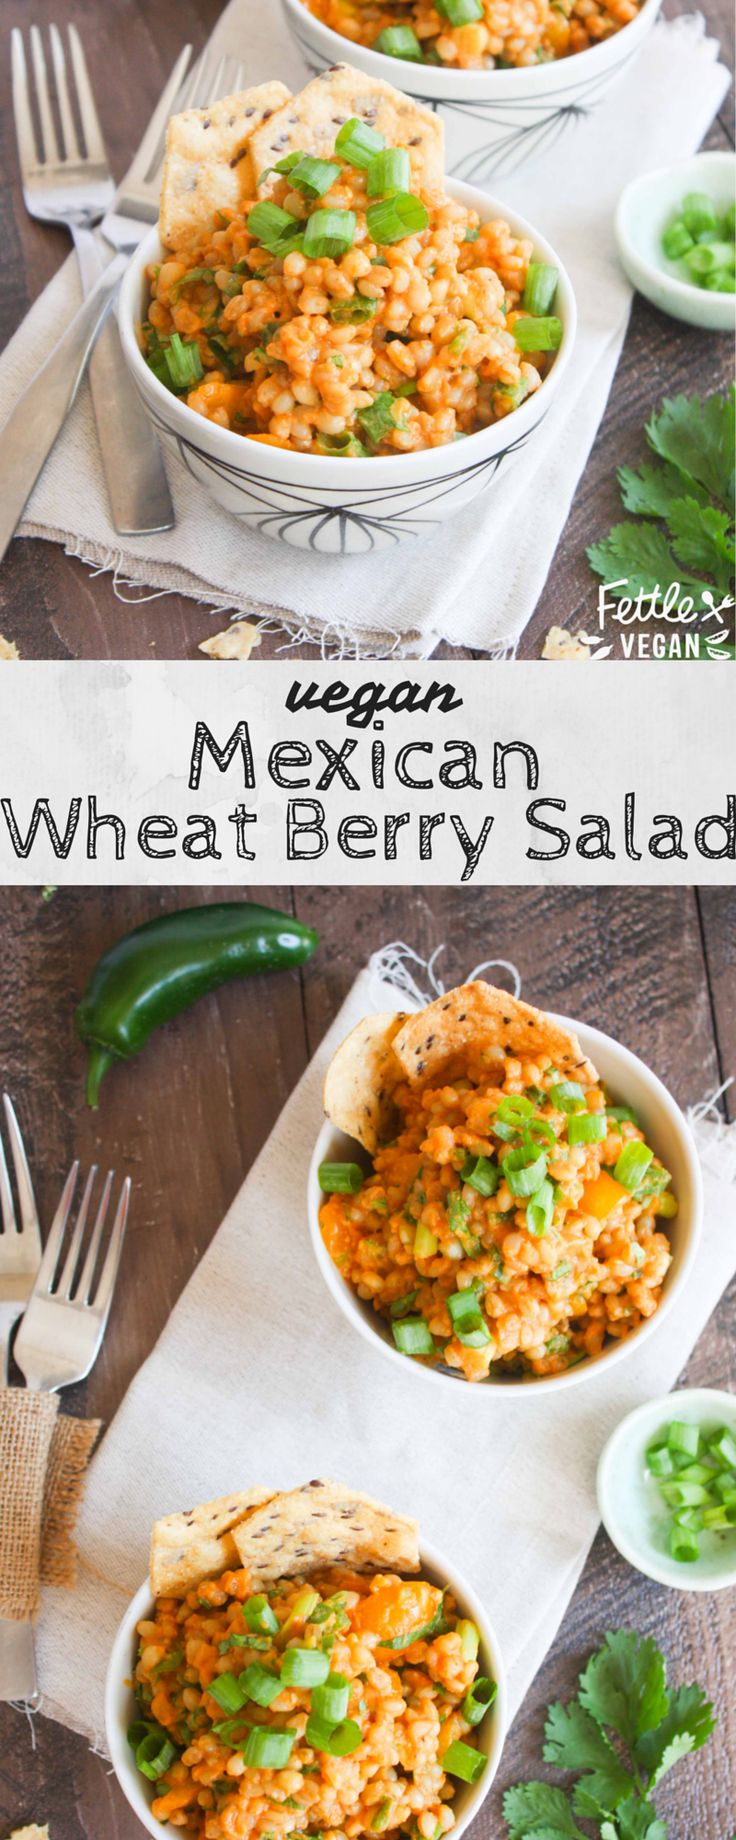 Mexican Wheat Berry Salad: a little bit spicy and full of flavor, it's the perfect #TacoTuesday side dish! #vegan